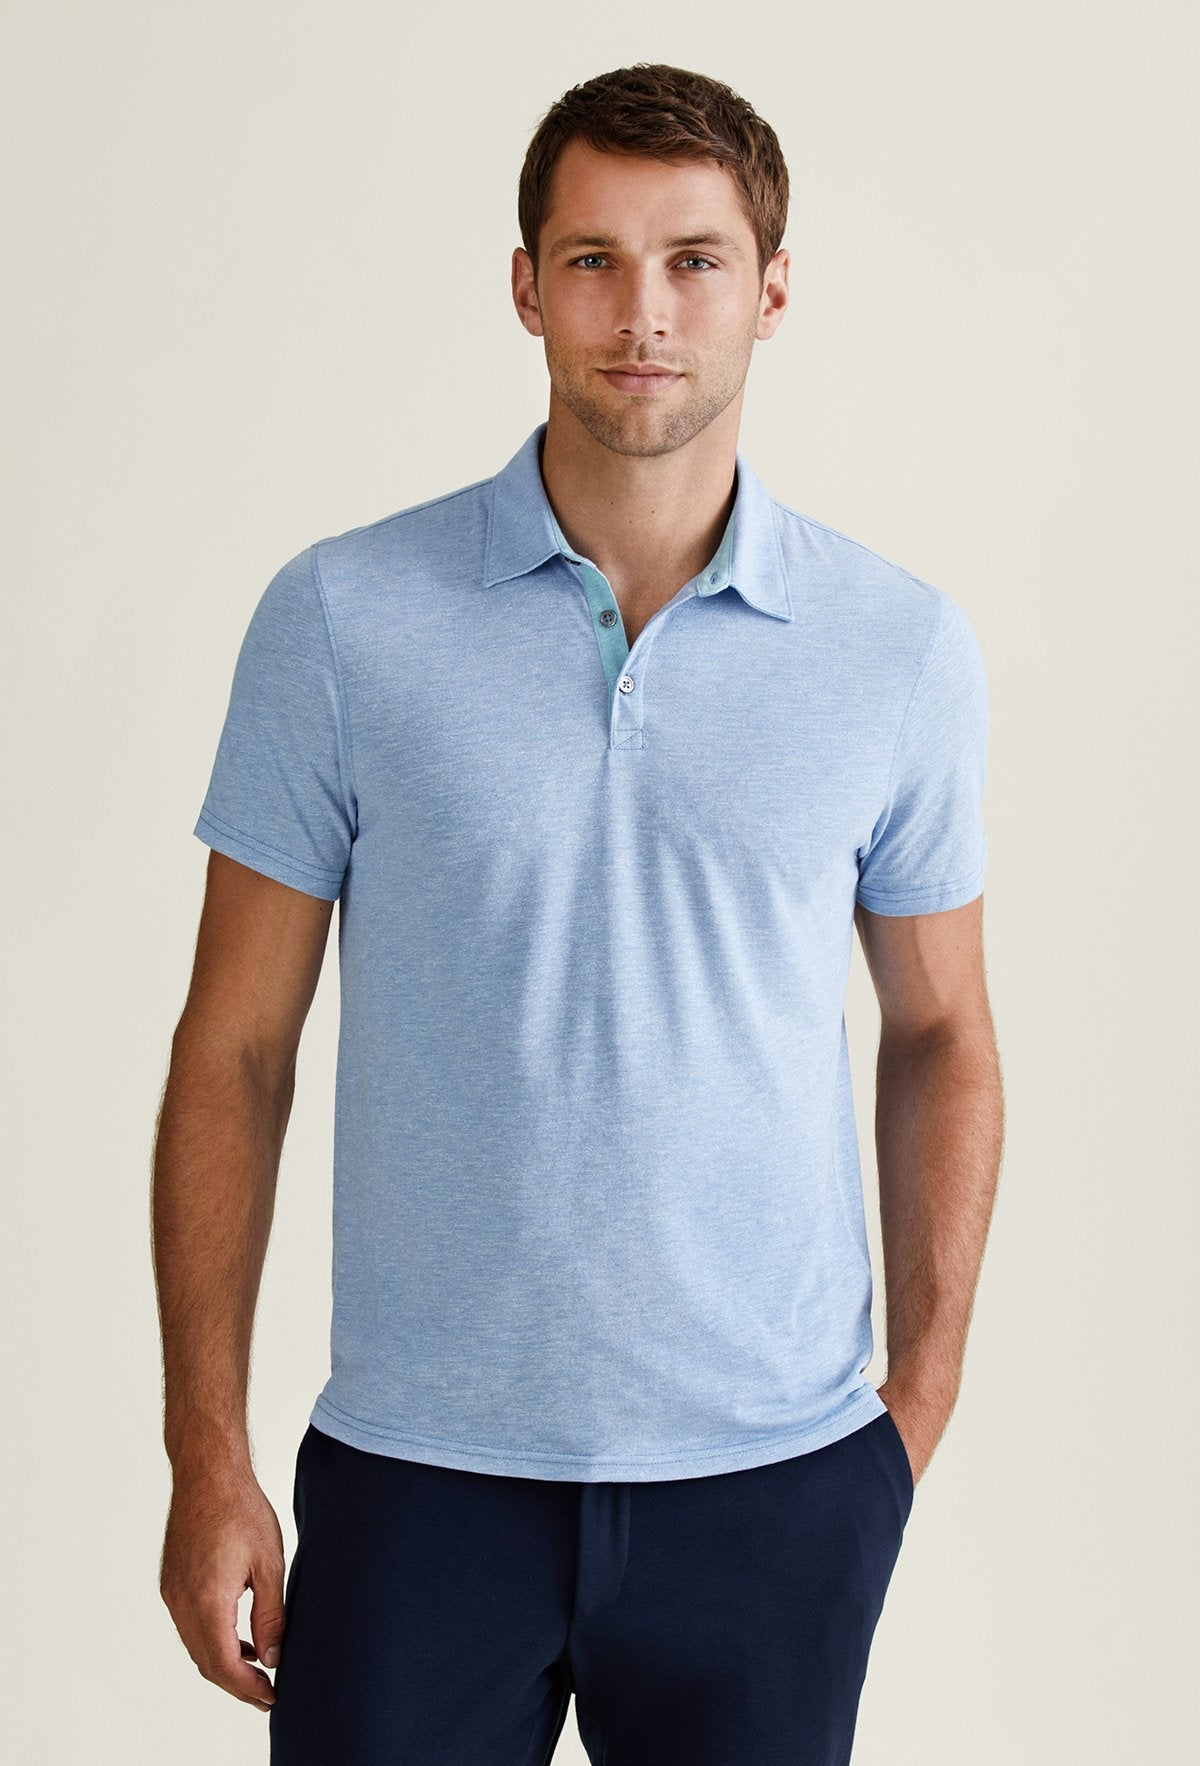 stylish men's polo shirts light blue fashion designer